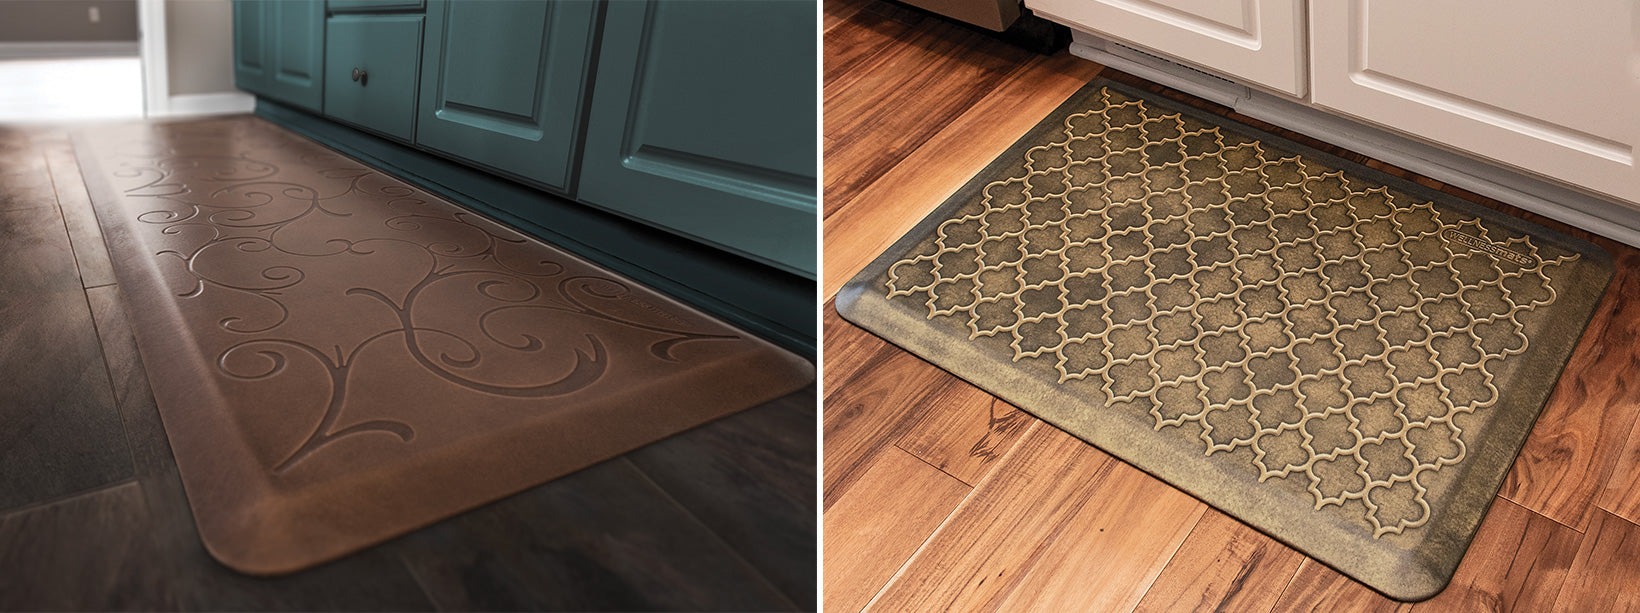 Bella and Trellis WellnessMats for a Kitchen Mat